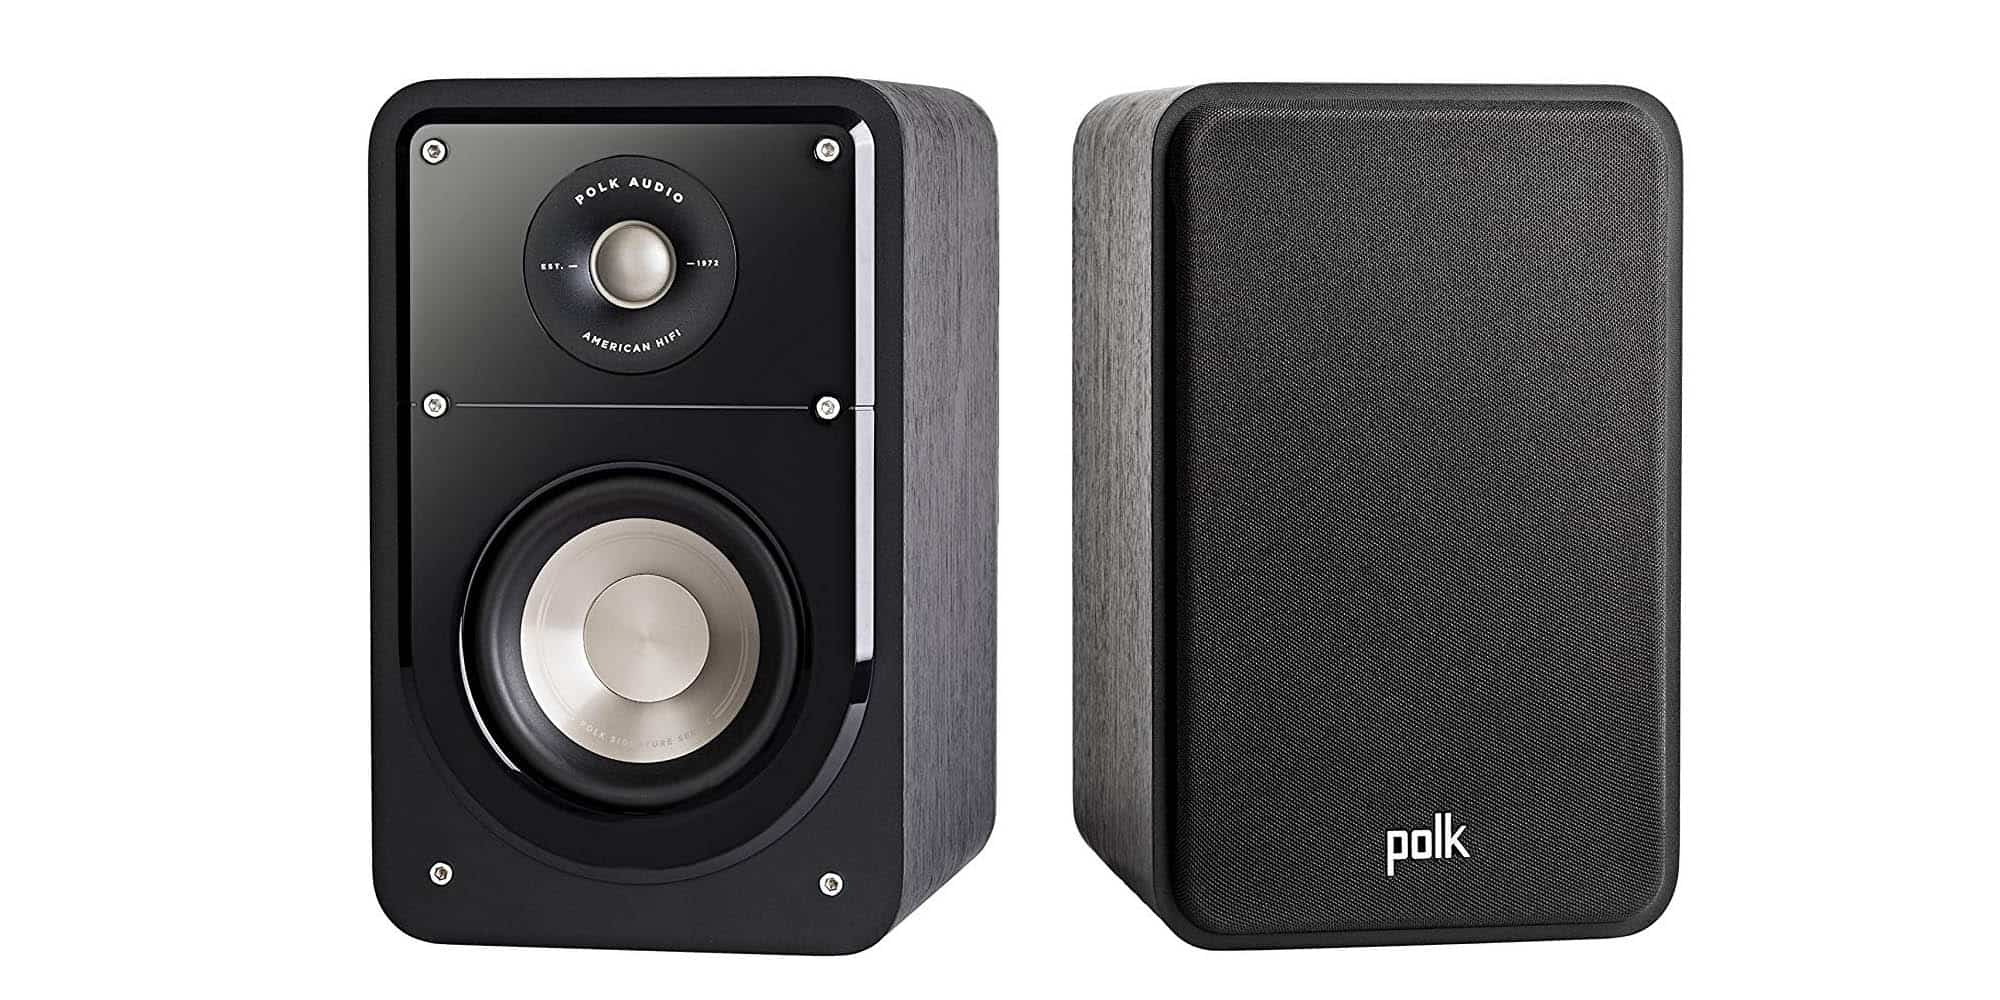 featured image for polk s15 review